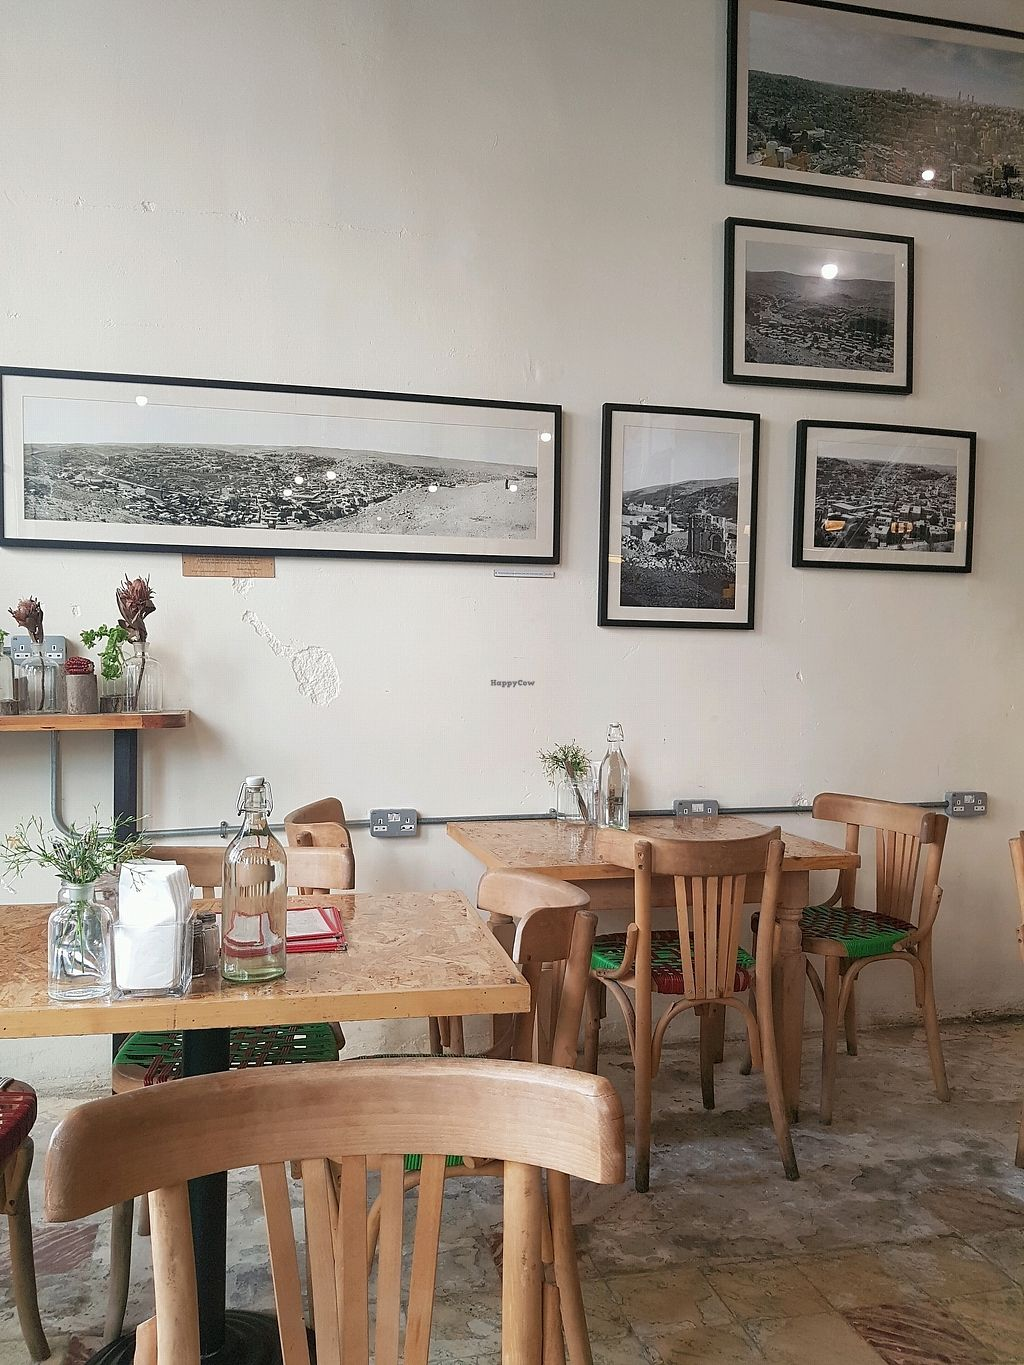 "Photo of Shams El Balad Cafe  by <a href=""/members/profile/estefinparis"">estefinparis</a> <br/>Inside <br/> November 3, 2017  - <a href='/contact/abuse/image/65293/321432'>Report</a>"